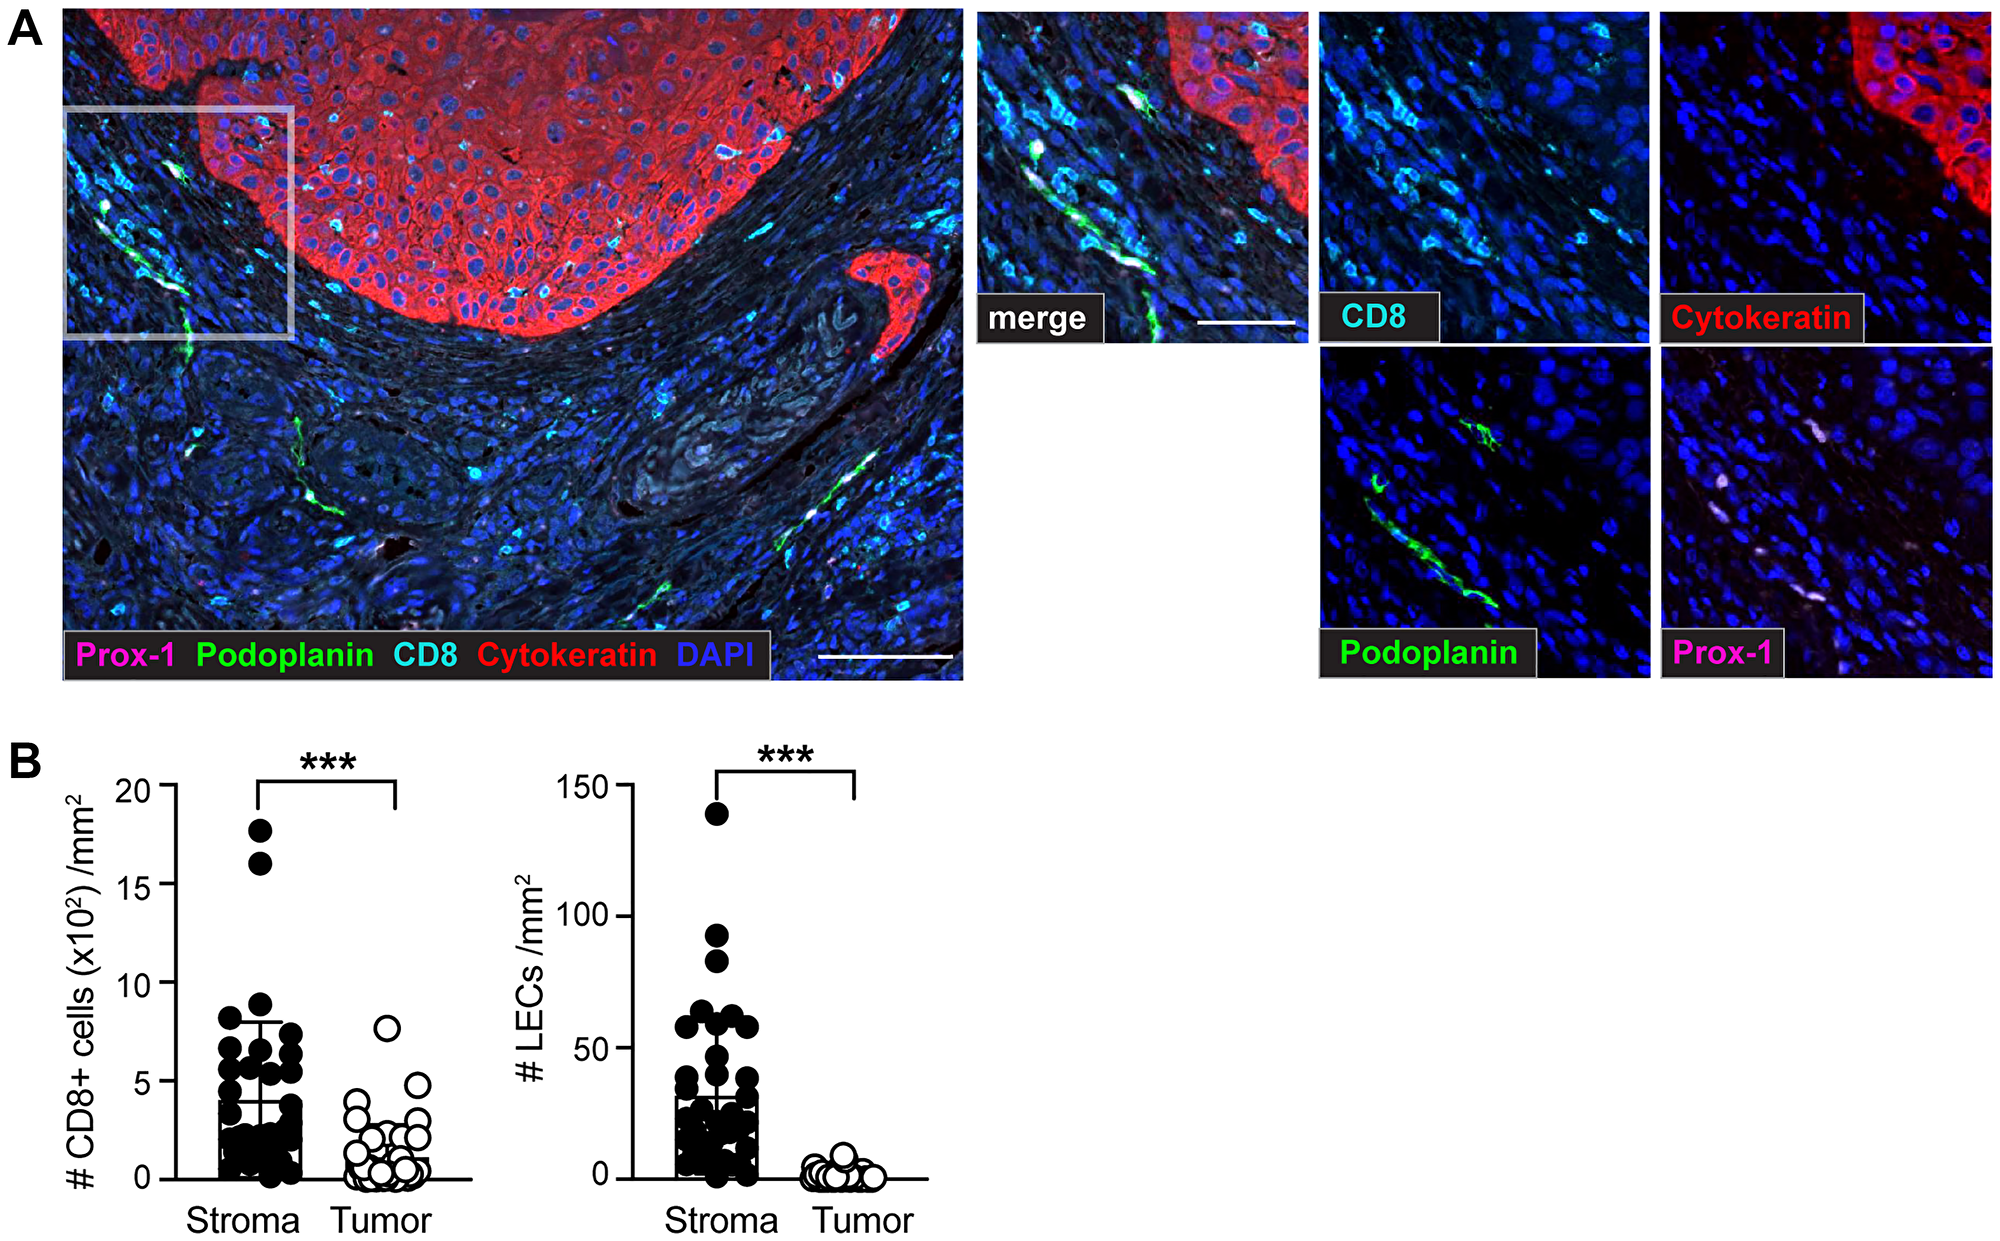 Identification of CD8+ T cells and lymphatic endothelial cells (LECs) within the tumor microenvironment (TME) of sSCC sections using multiplex immunohistochemistry (IHC).